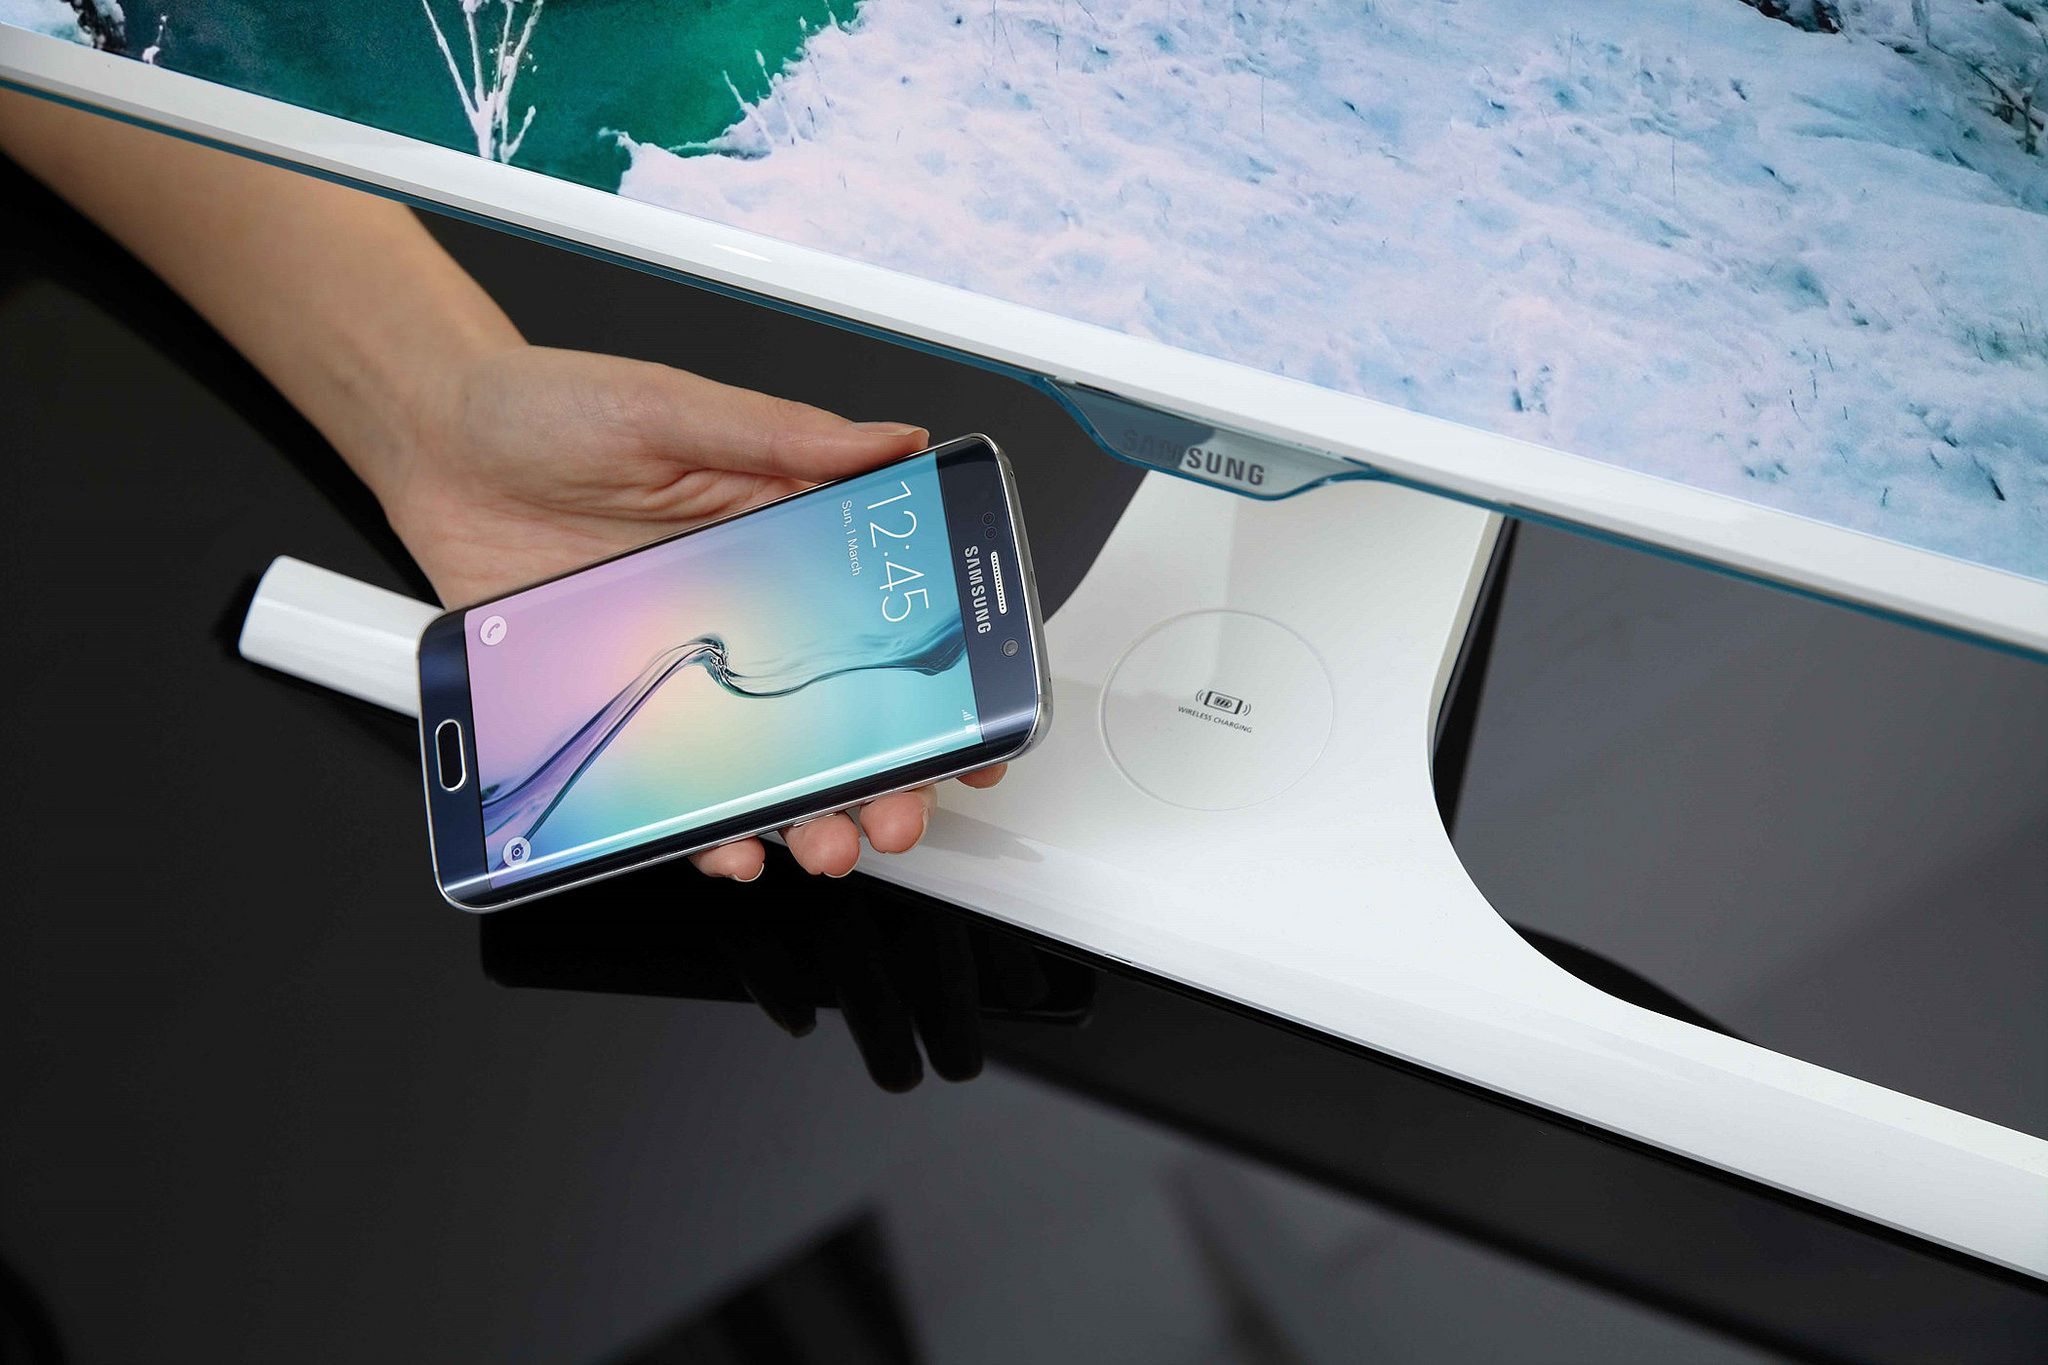 The new Samsung SE370, the industry's first monitor with an integrated wireless charging function for mobile devices.